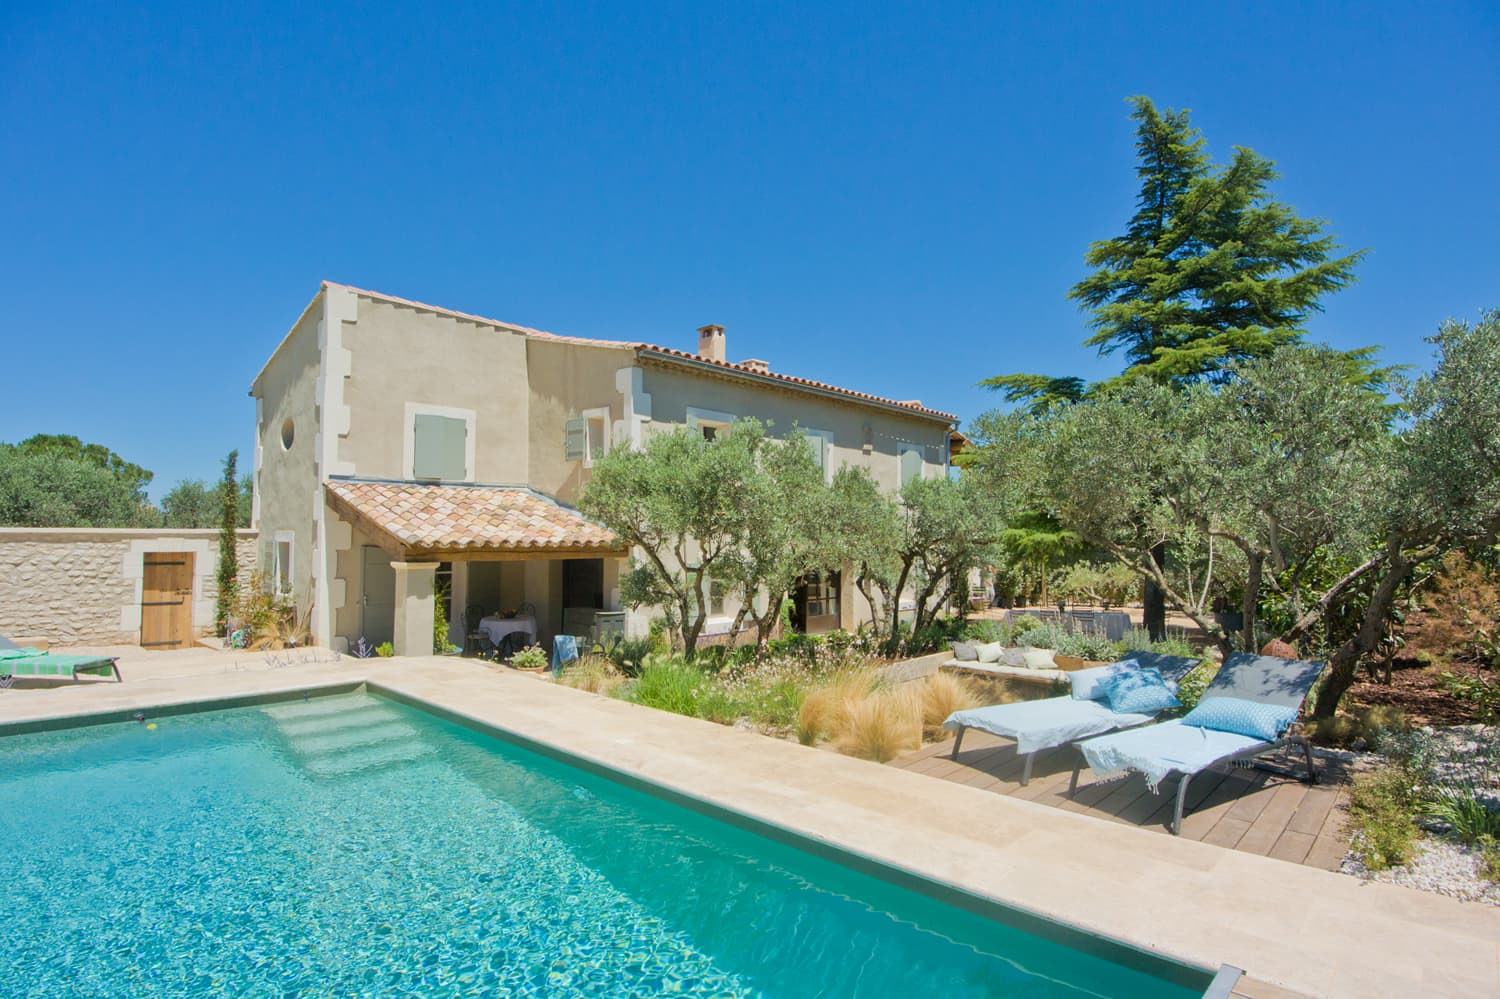 Provence-Alpes-Côte d'Azur holiday villa with private, heated pool